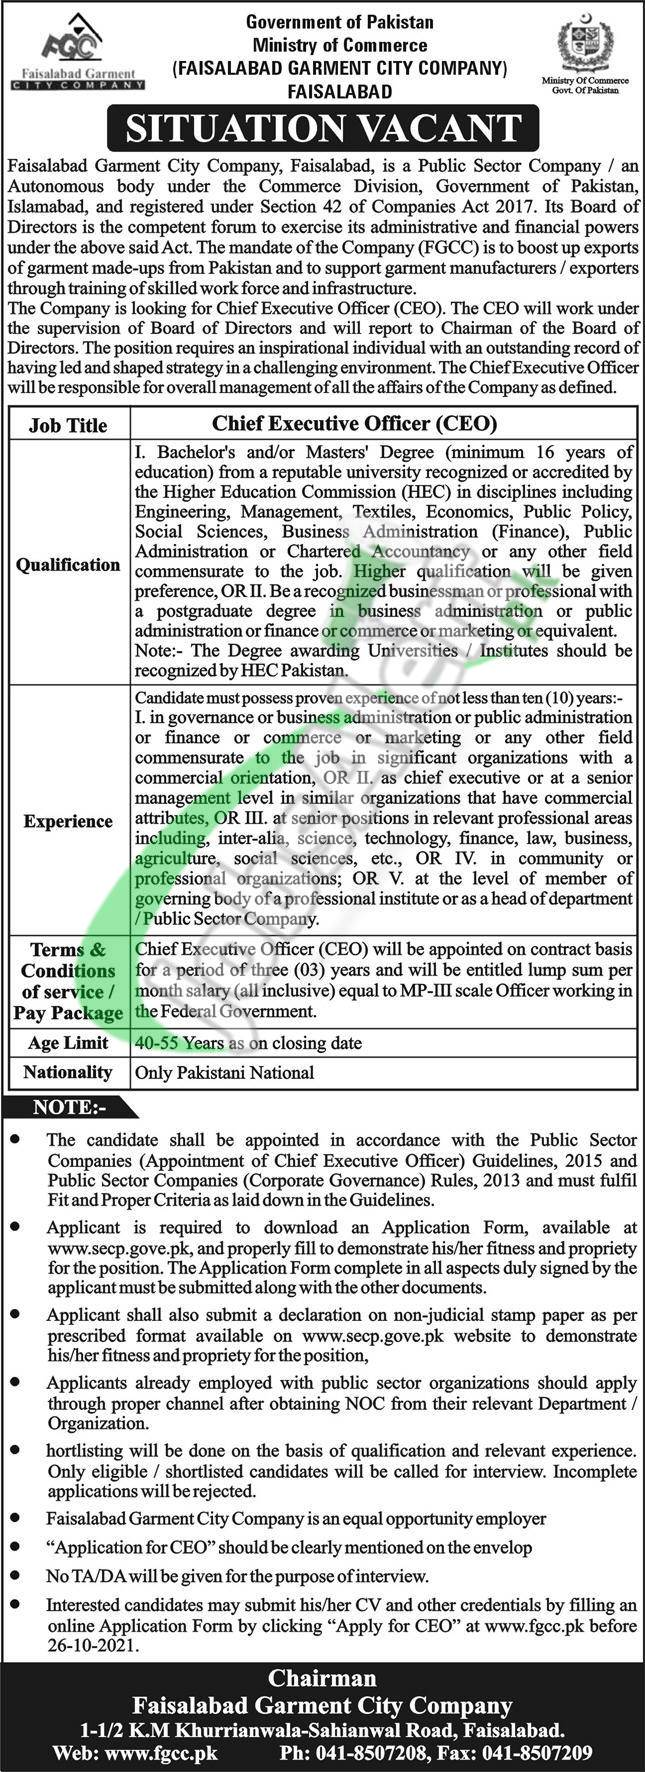 Faisalabad Garment City Company Jobs 2021 | Ministry of Commerce and Textile Industry